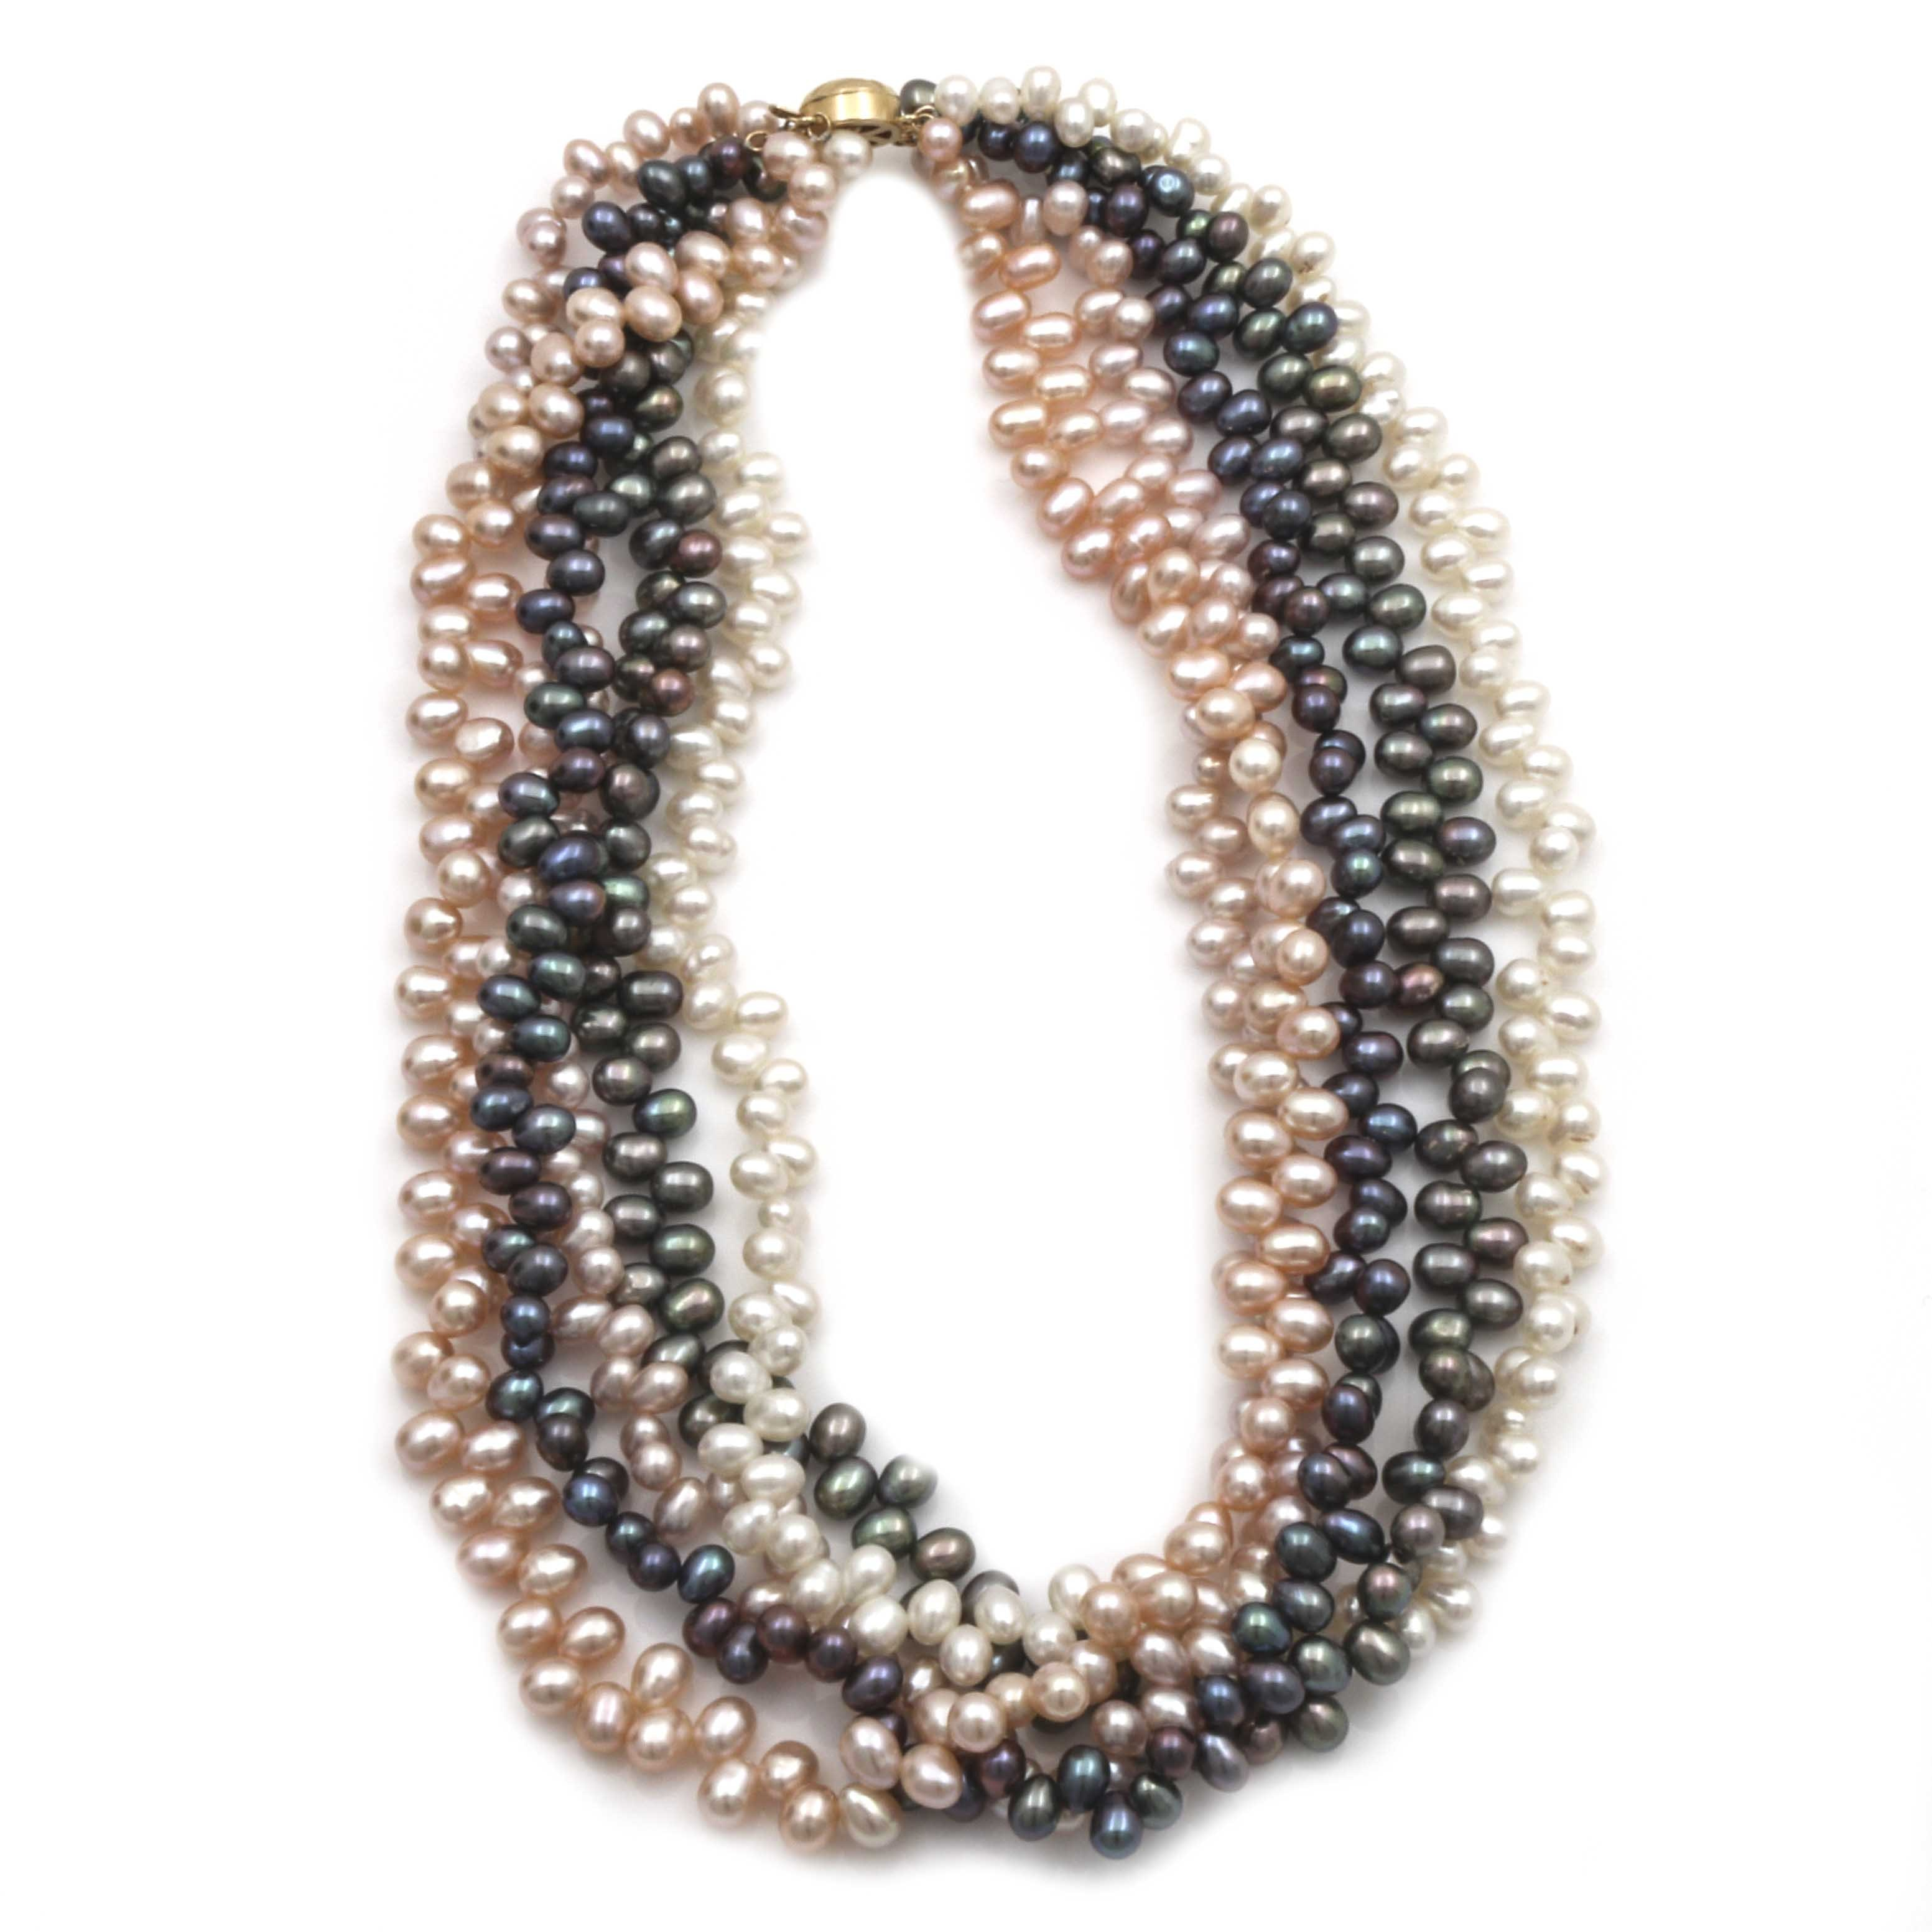 14K Yellow Gold Multicolored Cultured Freshwater Pearl Five Strand Necklace